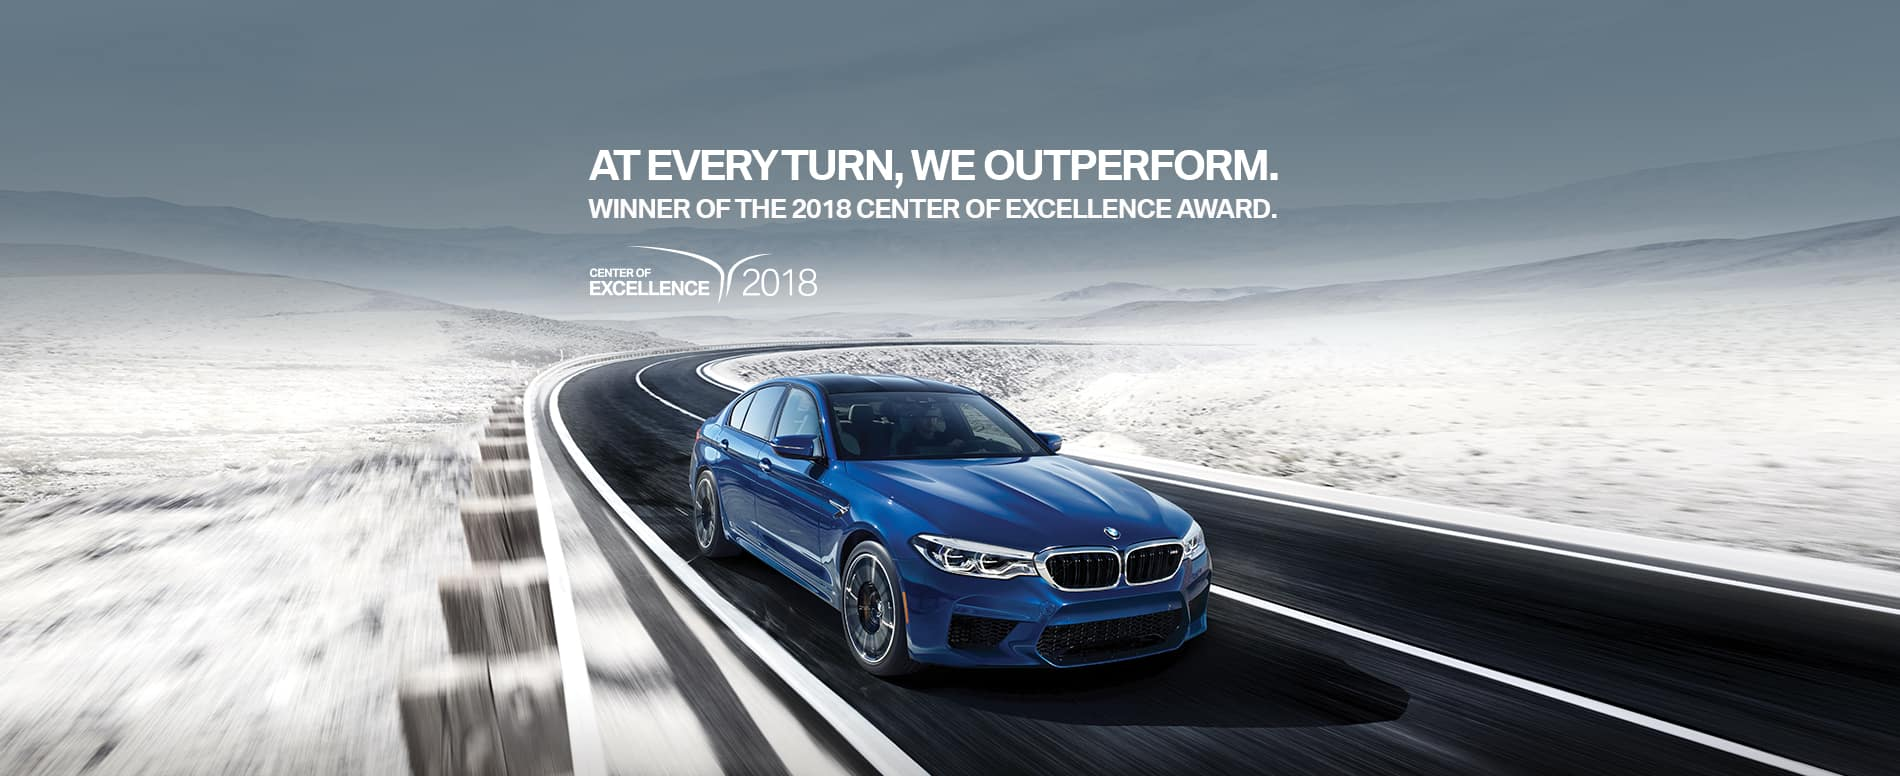 Tulley BMW Manchester >> Tulley BMW of Manchester | BMW Dealer in Manchester, NH